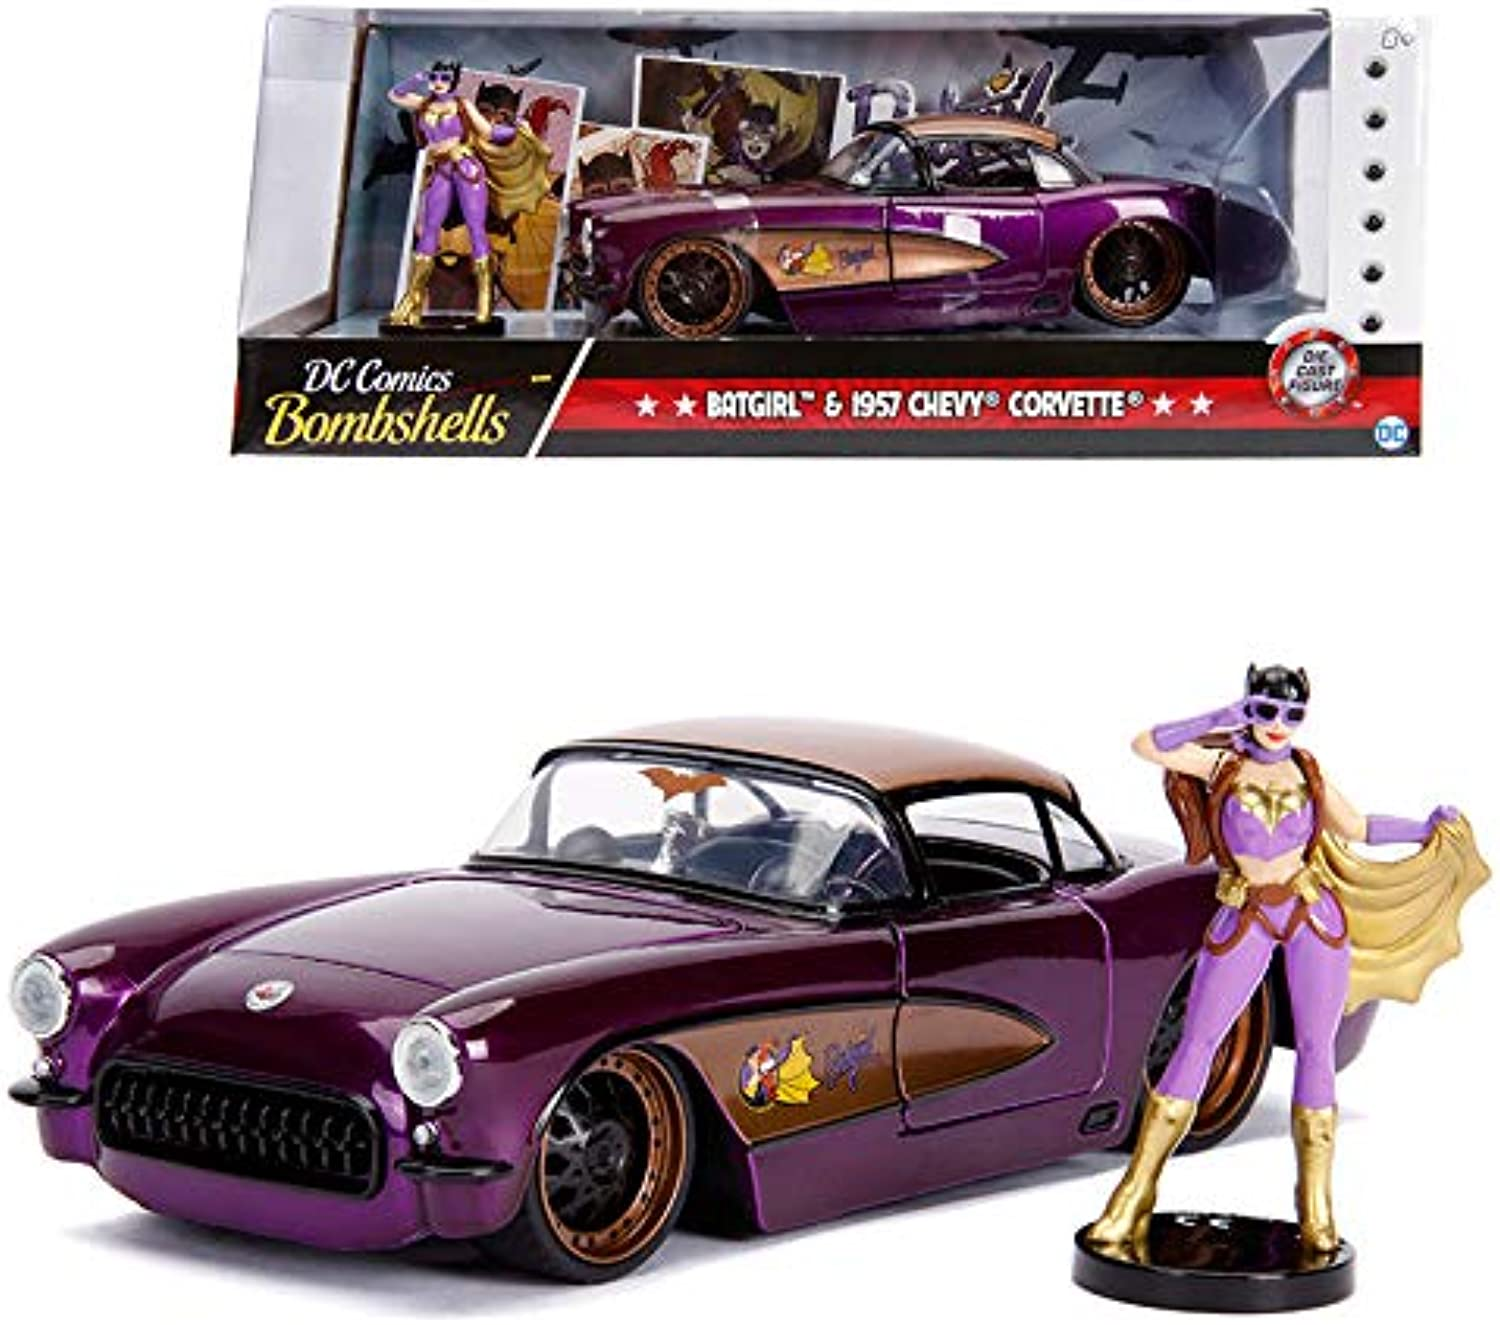 contador genuino Jada 1 24 Die-Cast Hollywood Rides Batgirl & & & 1957 Chevy Corvette Coche Model Collection  precioso